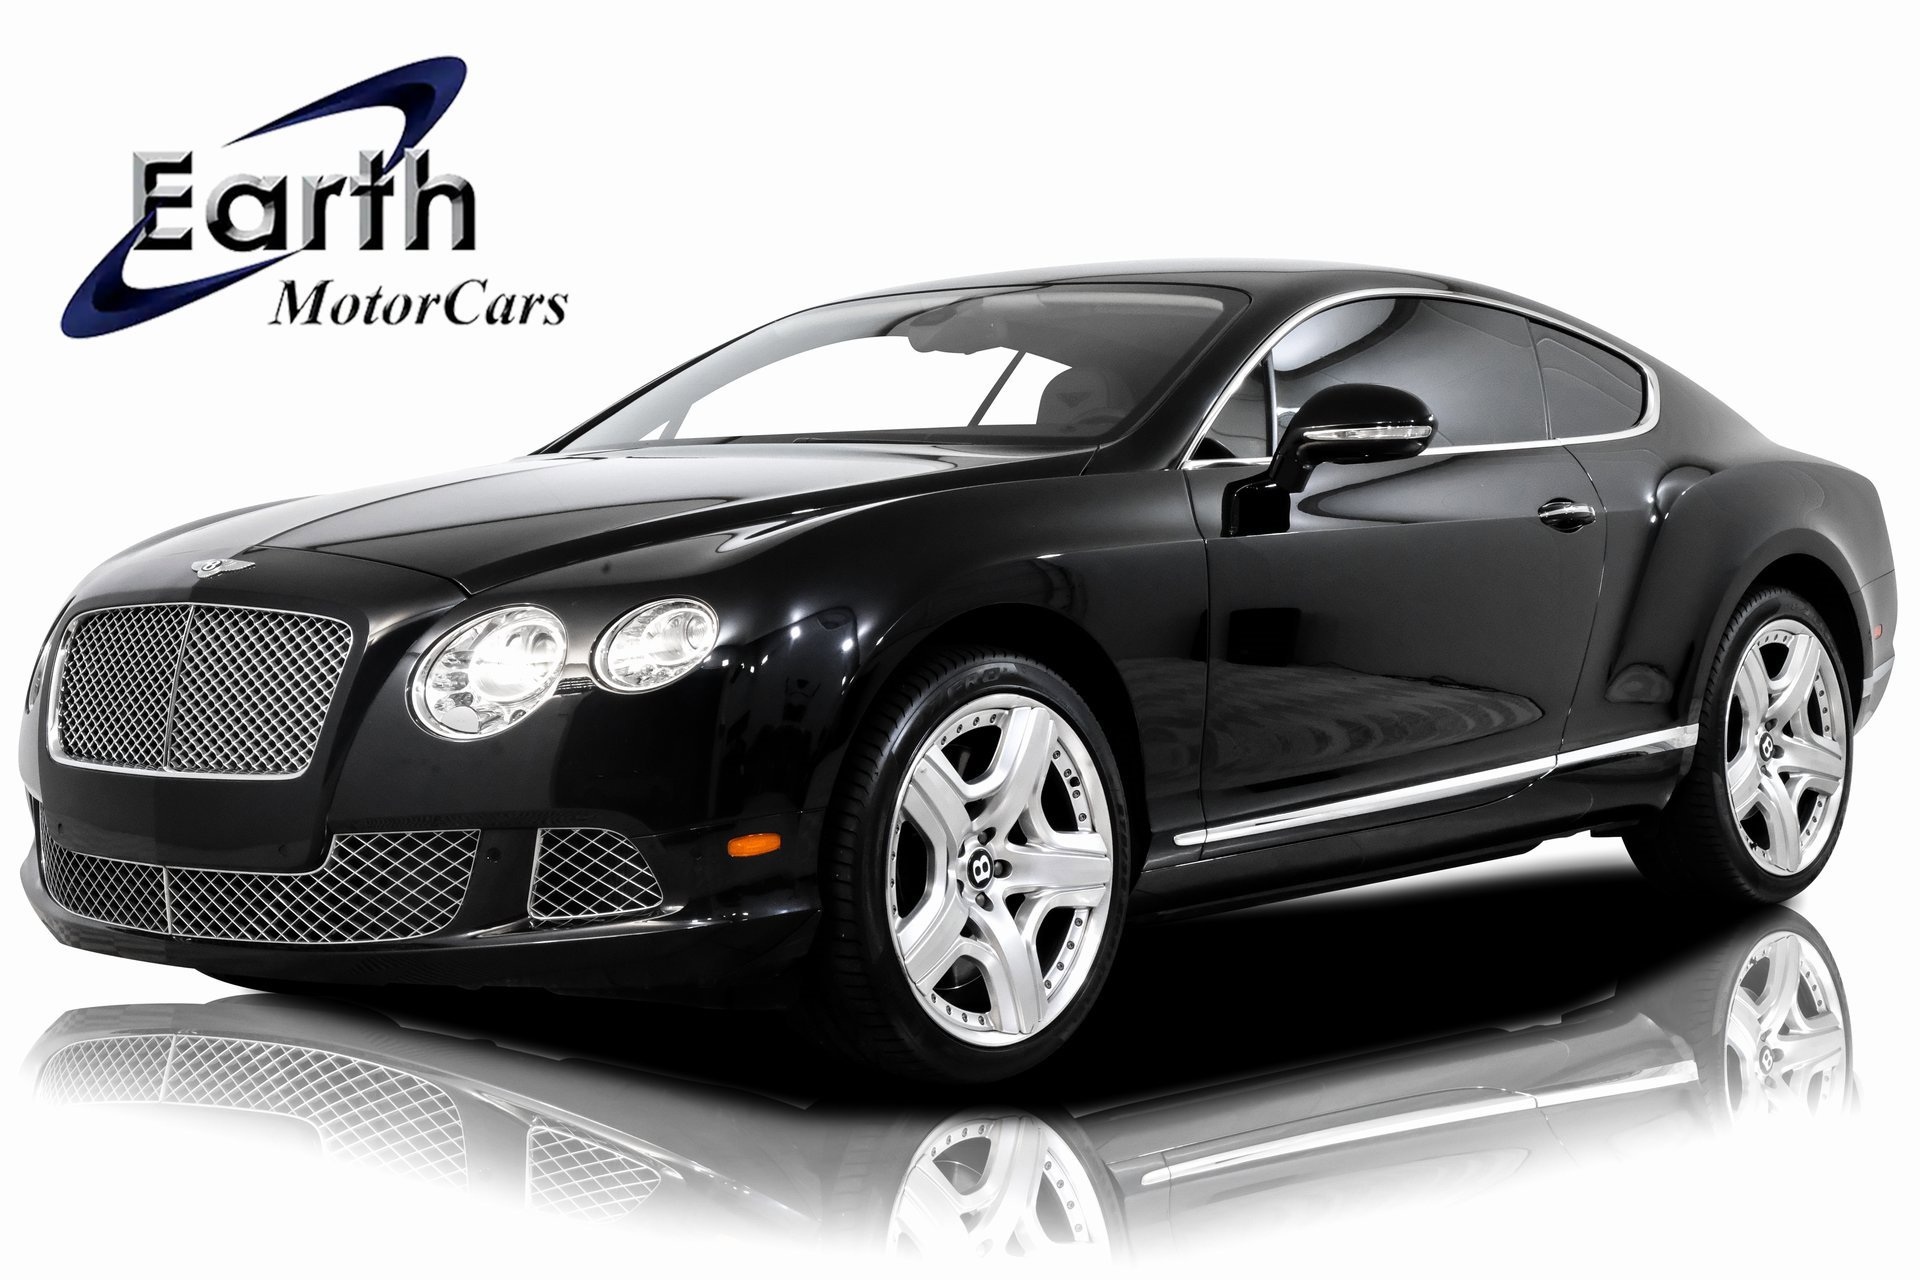 2012 Bentley Continental GT Coupe image